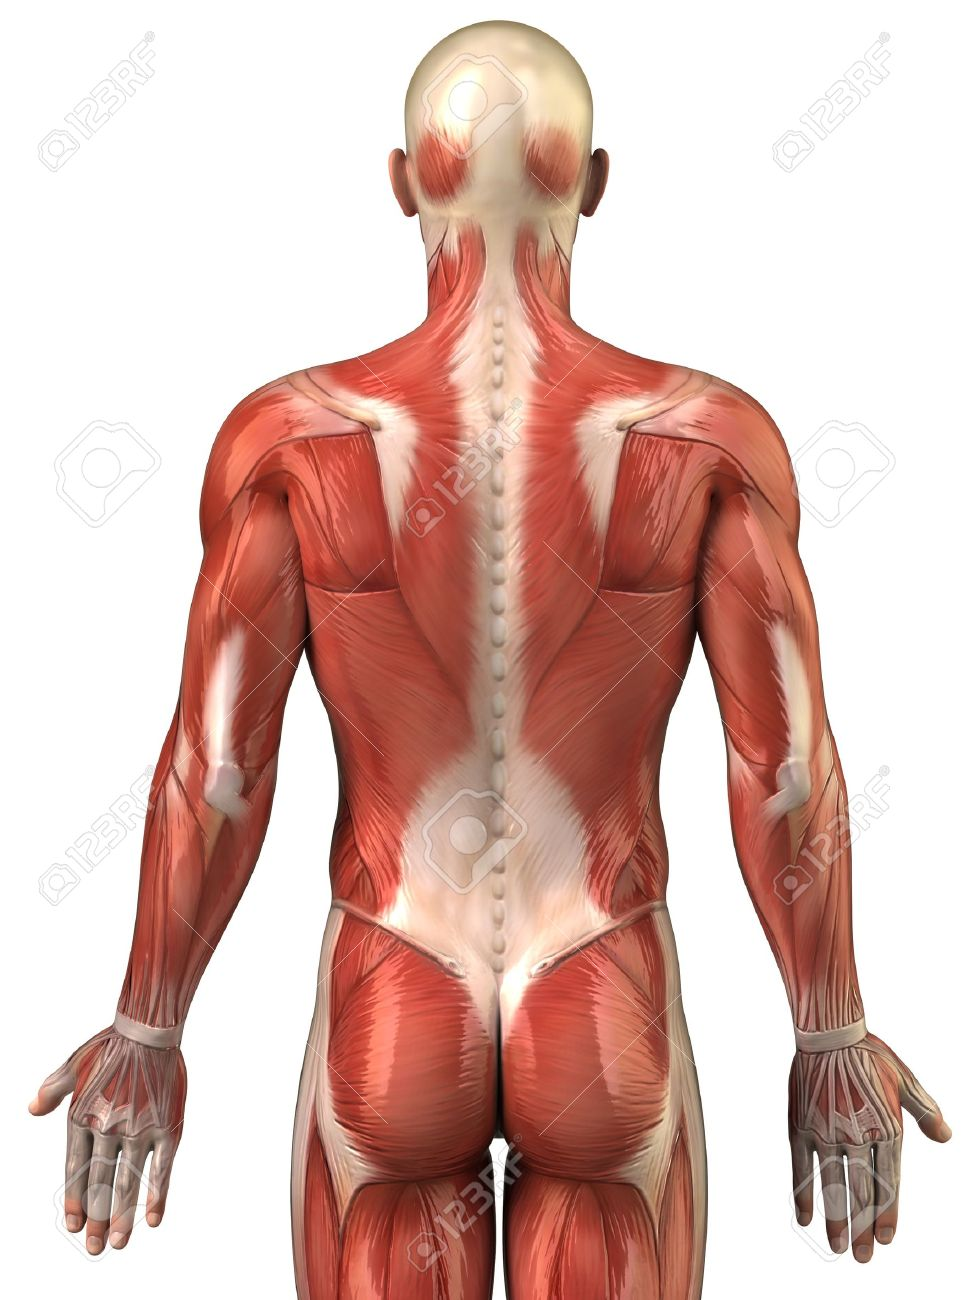 Anatomy of human muscles Stock Photo - 10010555